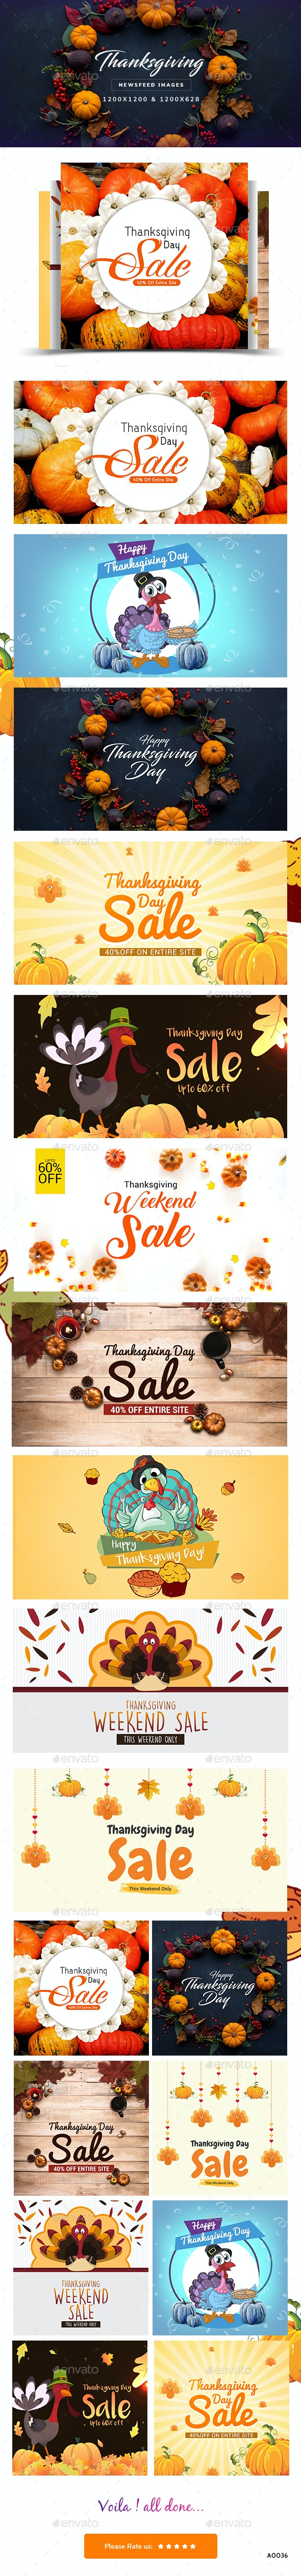 Thanksgiving Social Media Banners - 10 Designs - 2 Sizes - Banners & Ads Web Elements